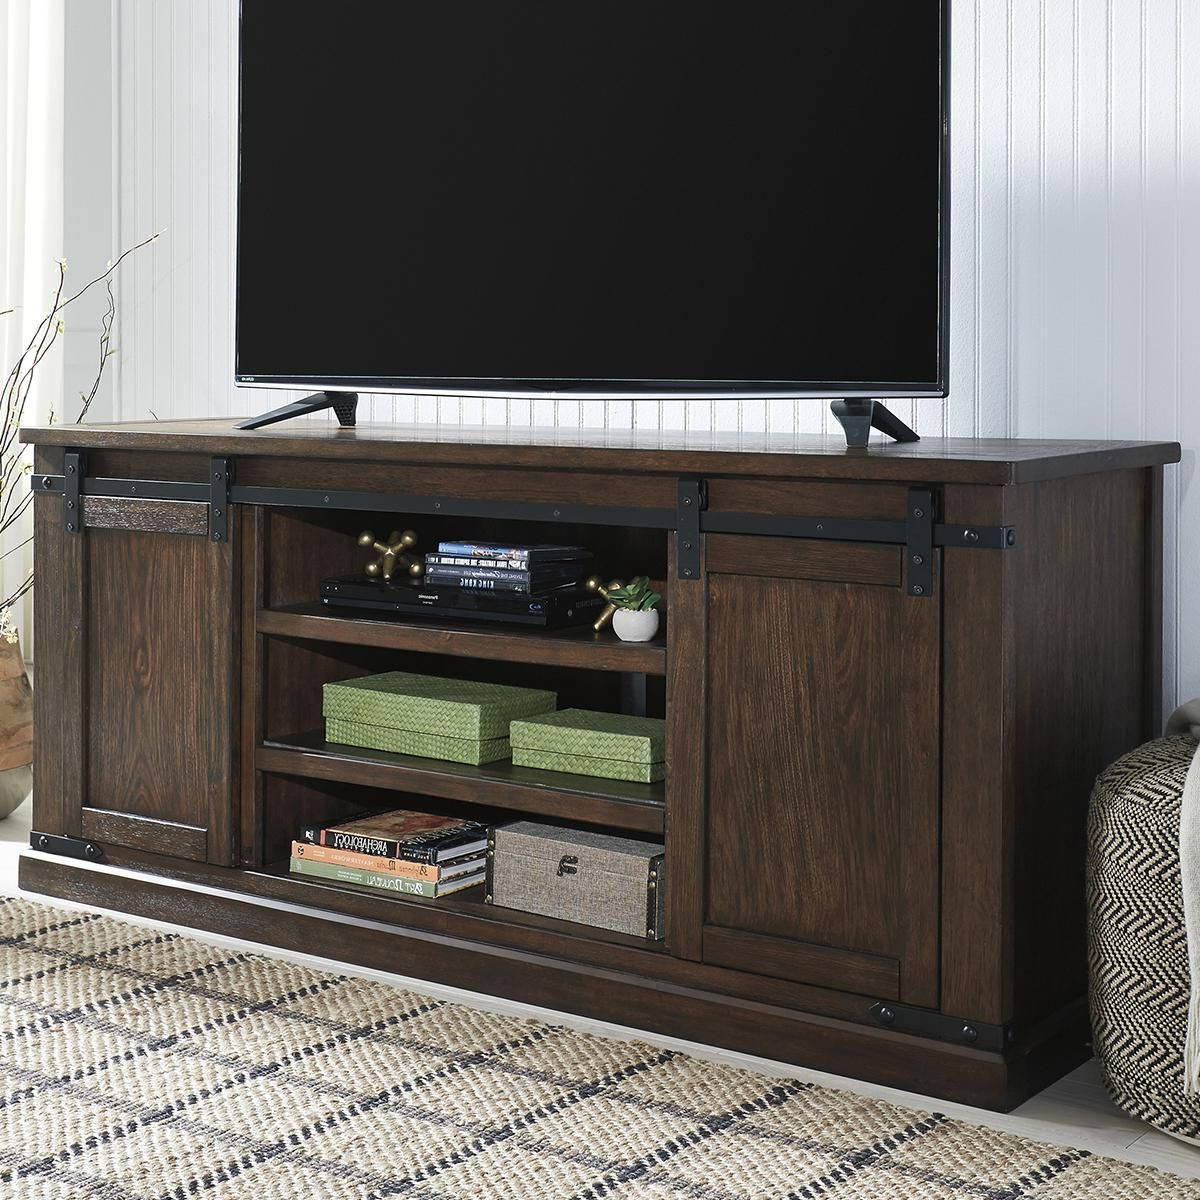 Popular Chromium Extra Wide Tv Unit Stands Regarding At Home Budmore Extra Large Tv Stand In Rustic Brown (View 1 of 10)